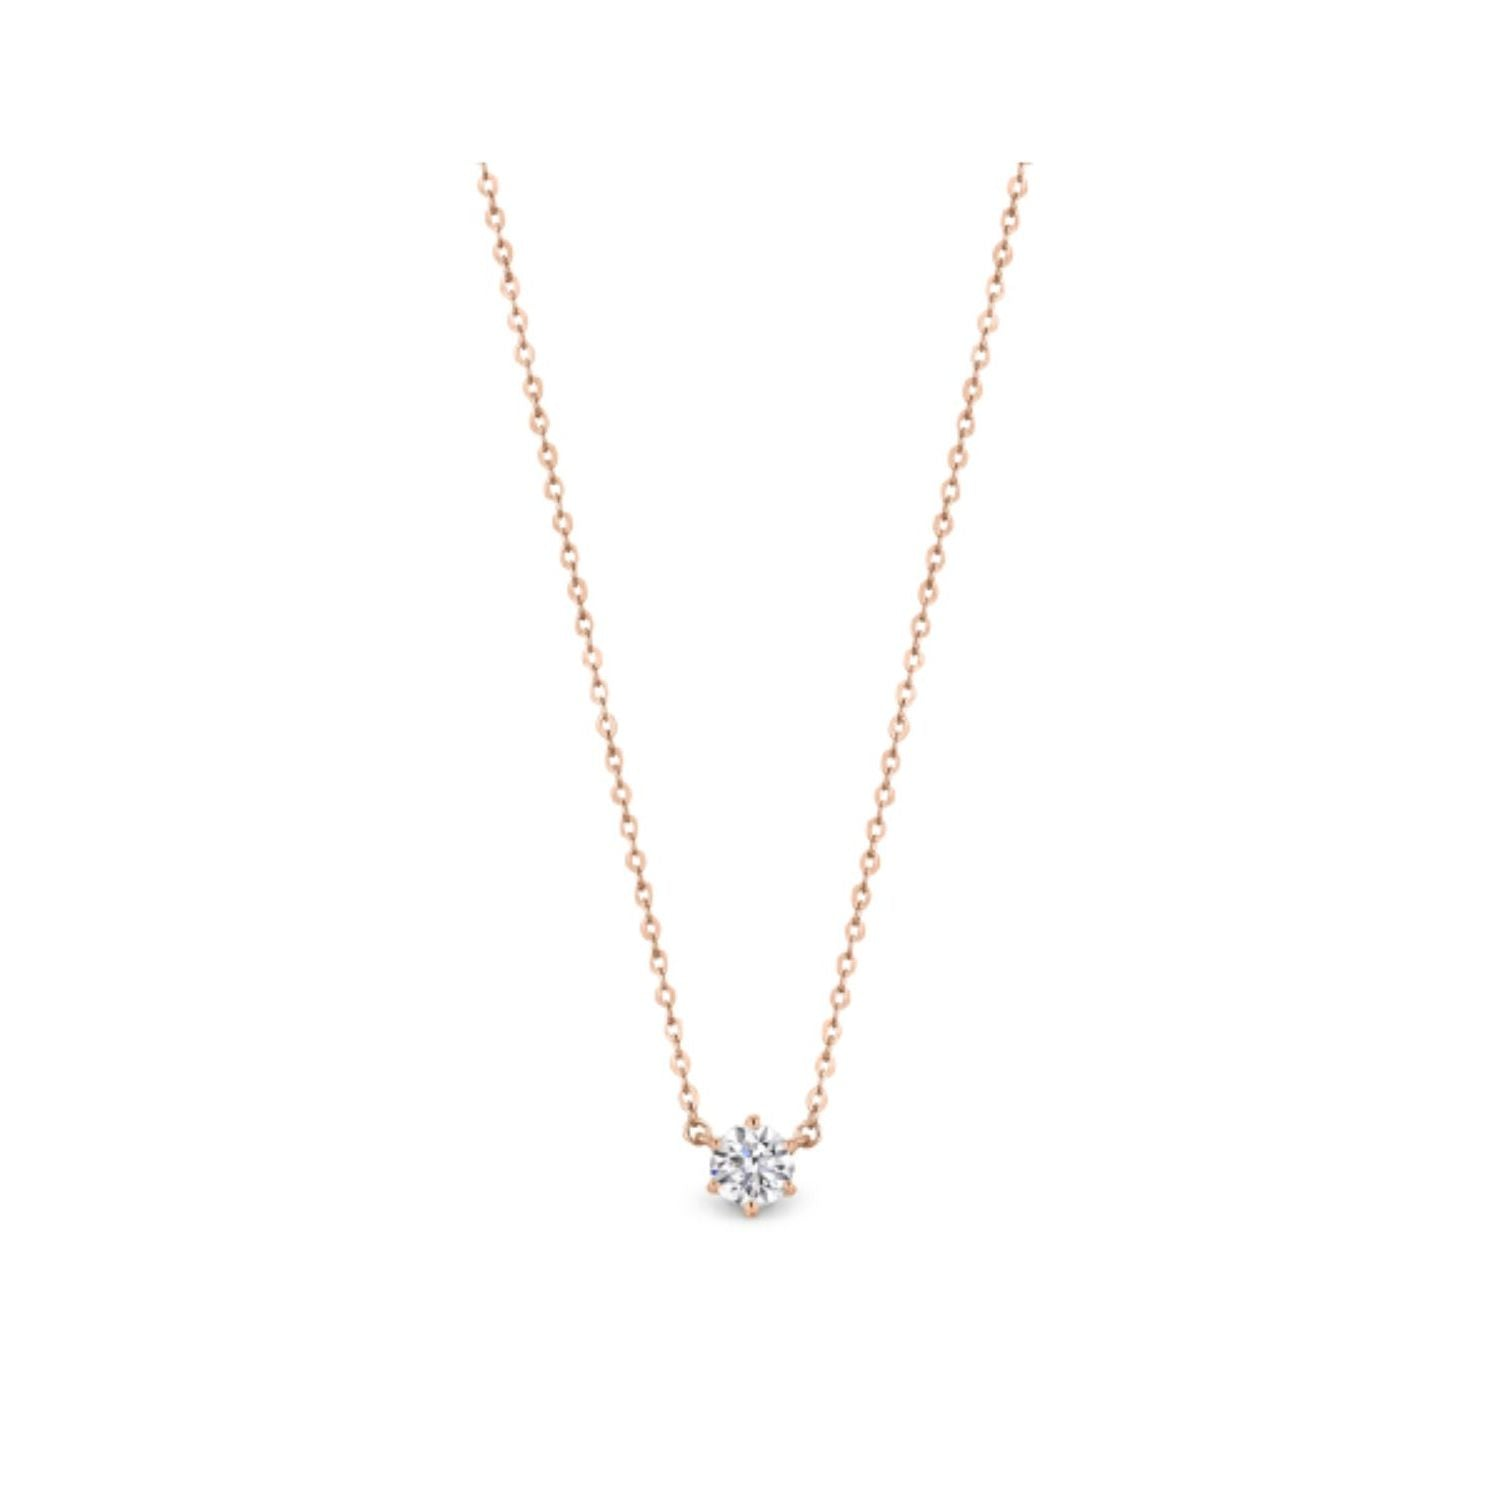 Georgini - Portobello Rose Gold Cubic Zirconia Necklet